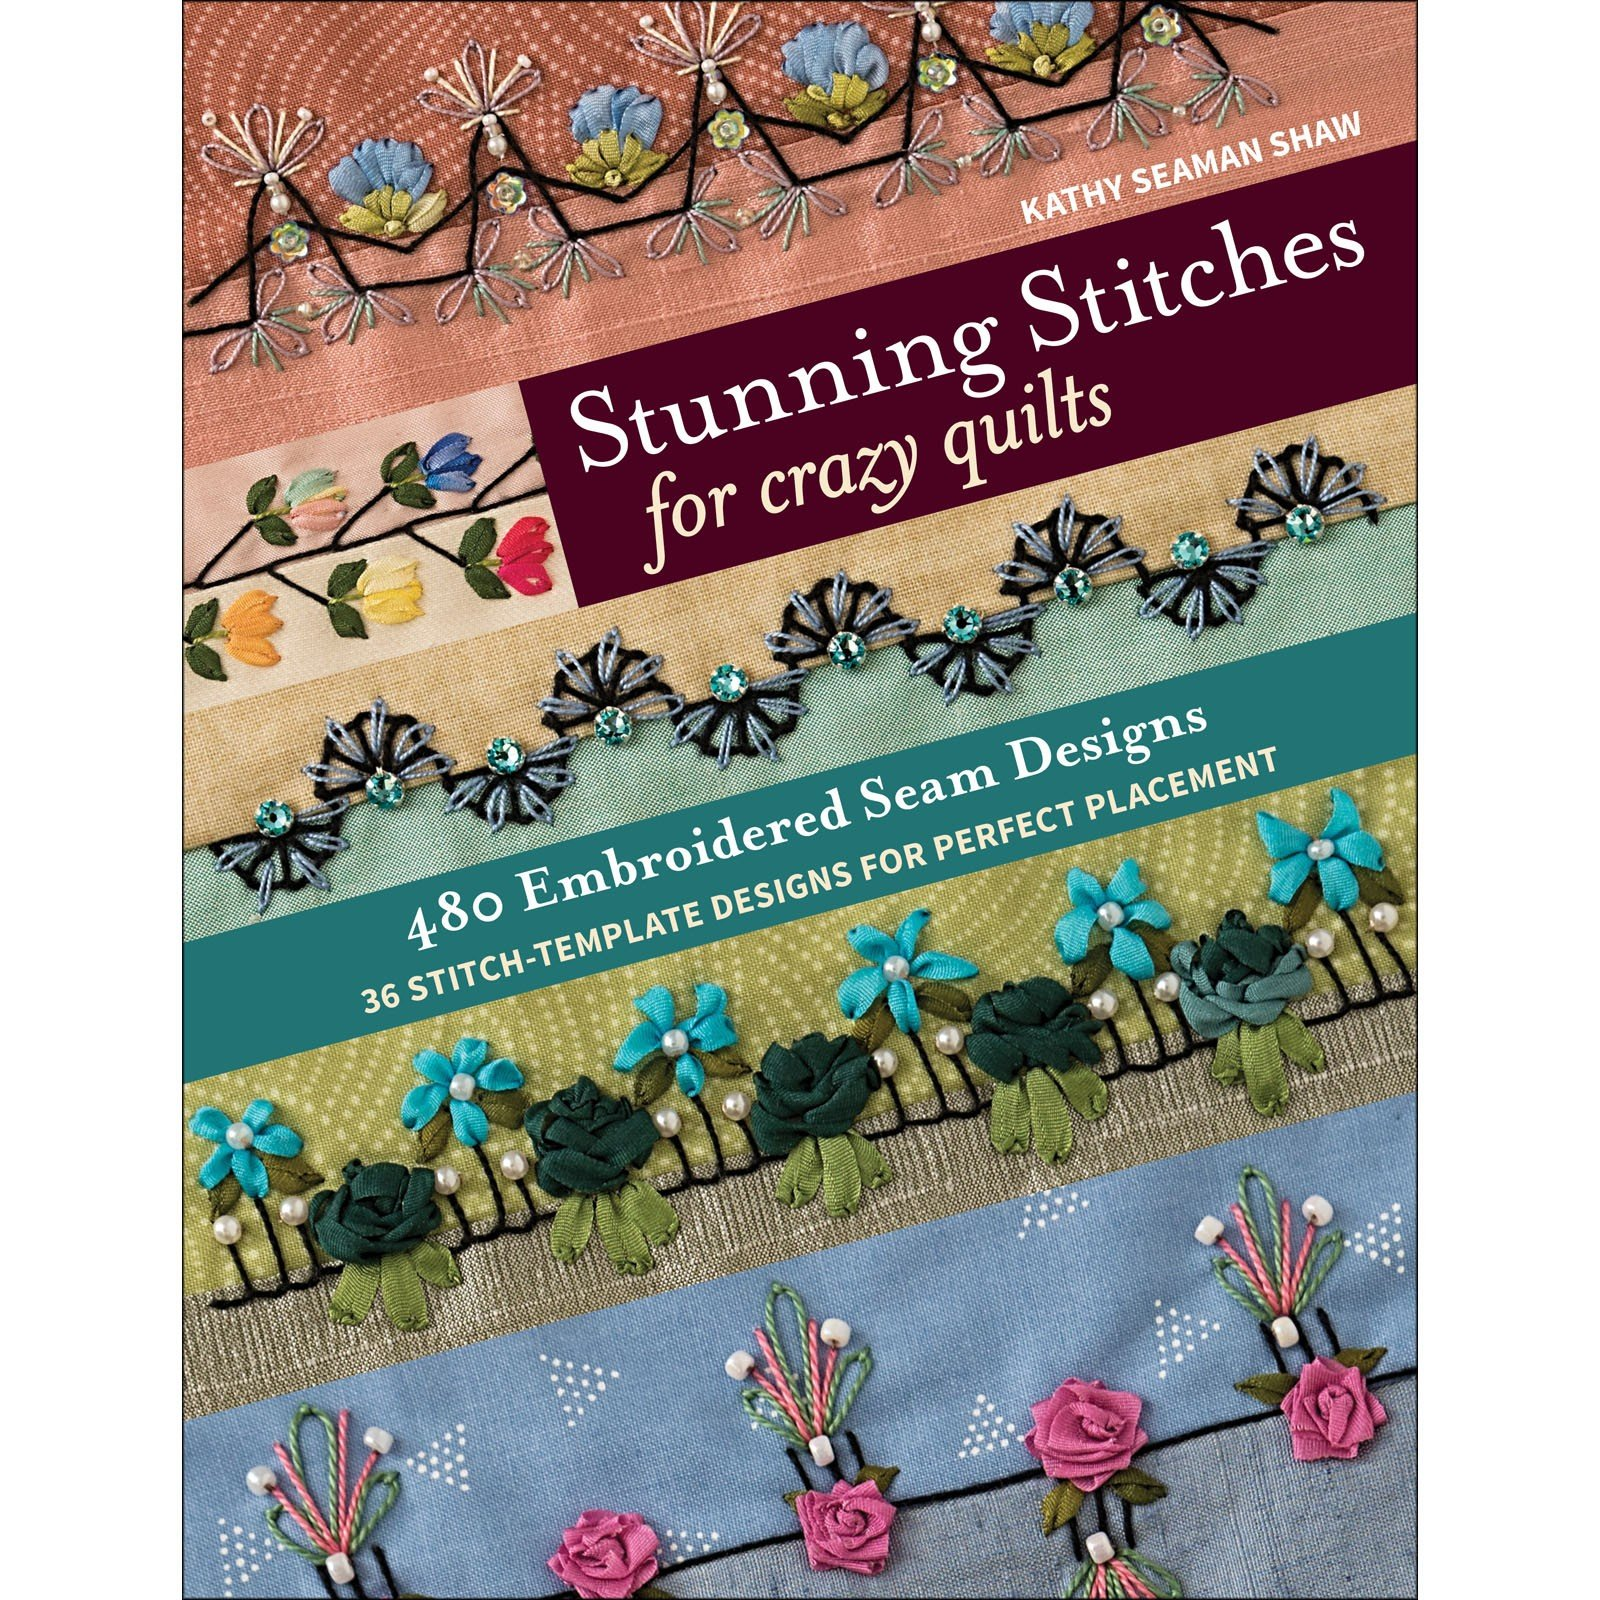 Book. Crazy Quilting Stitches by Kathy Seaman Shaw